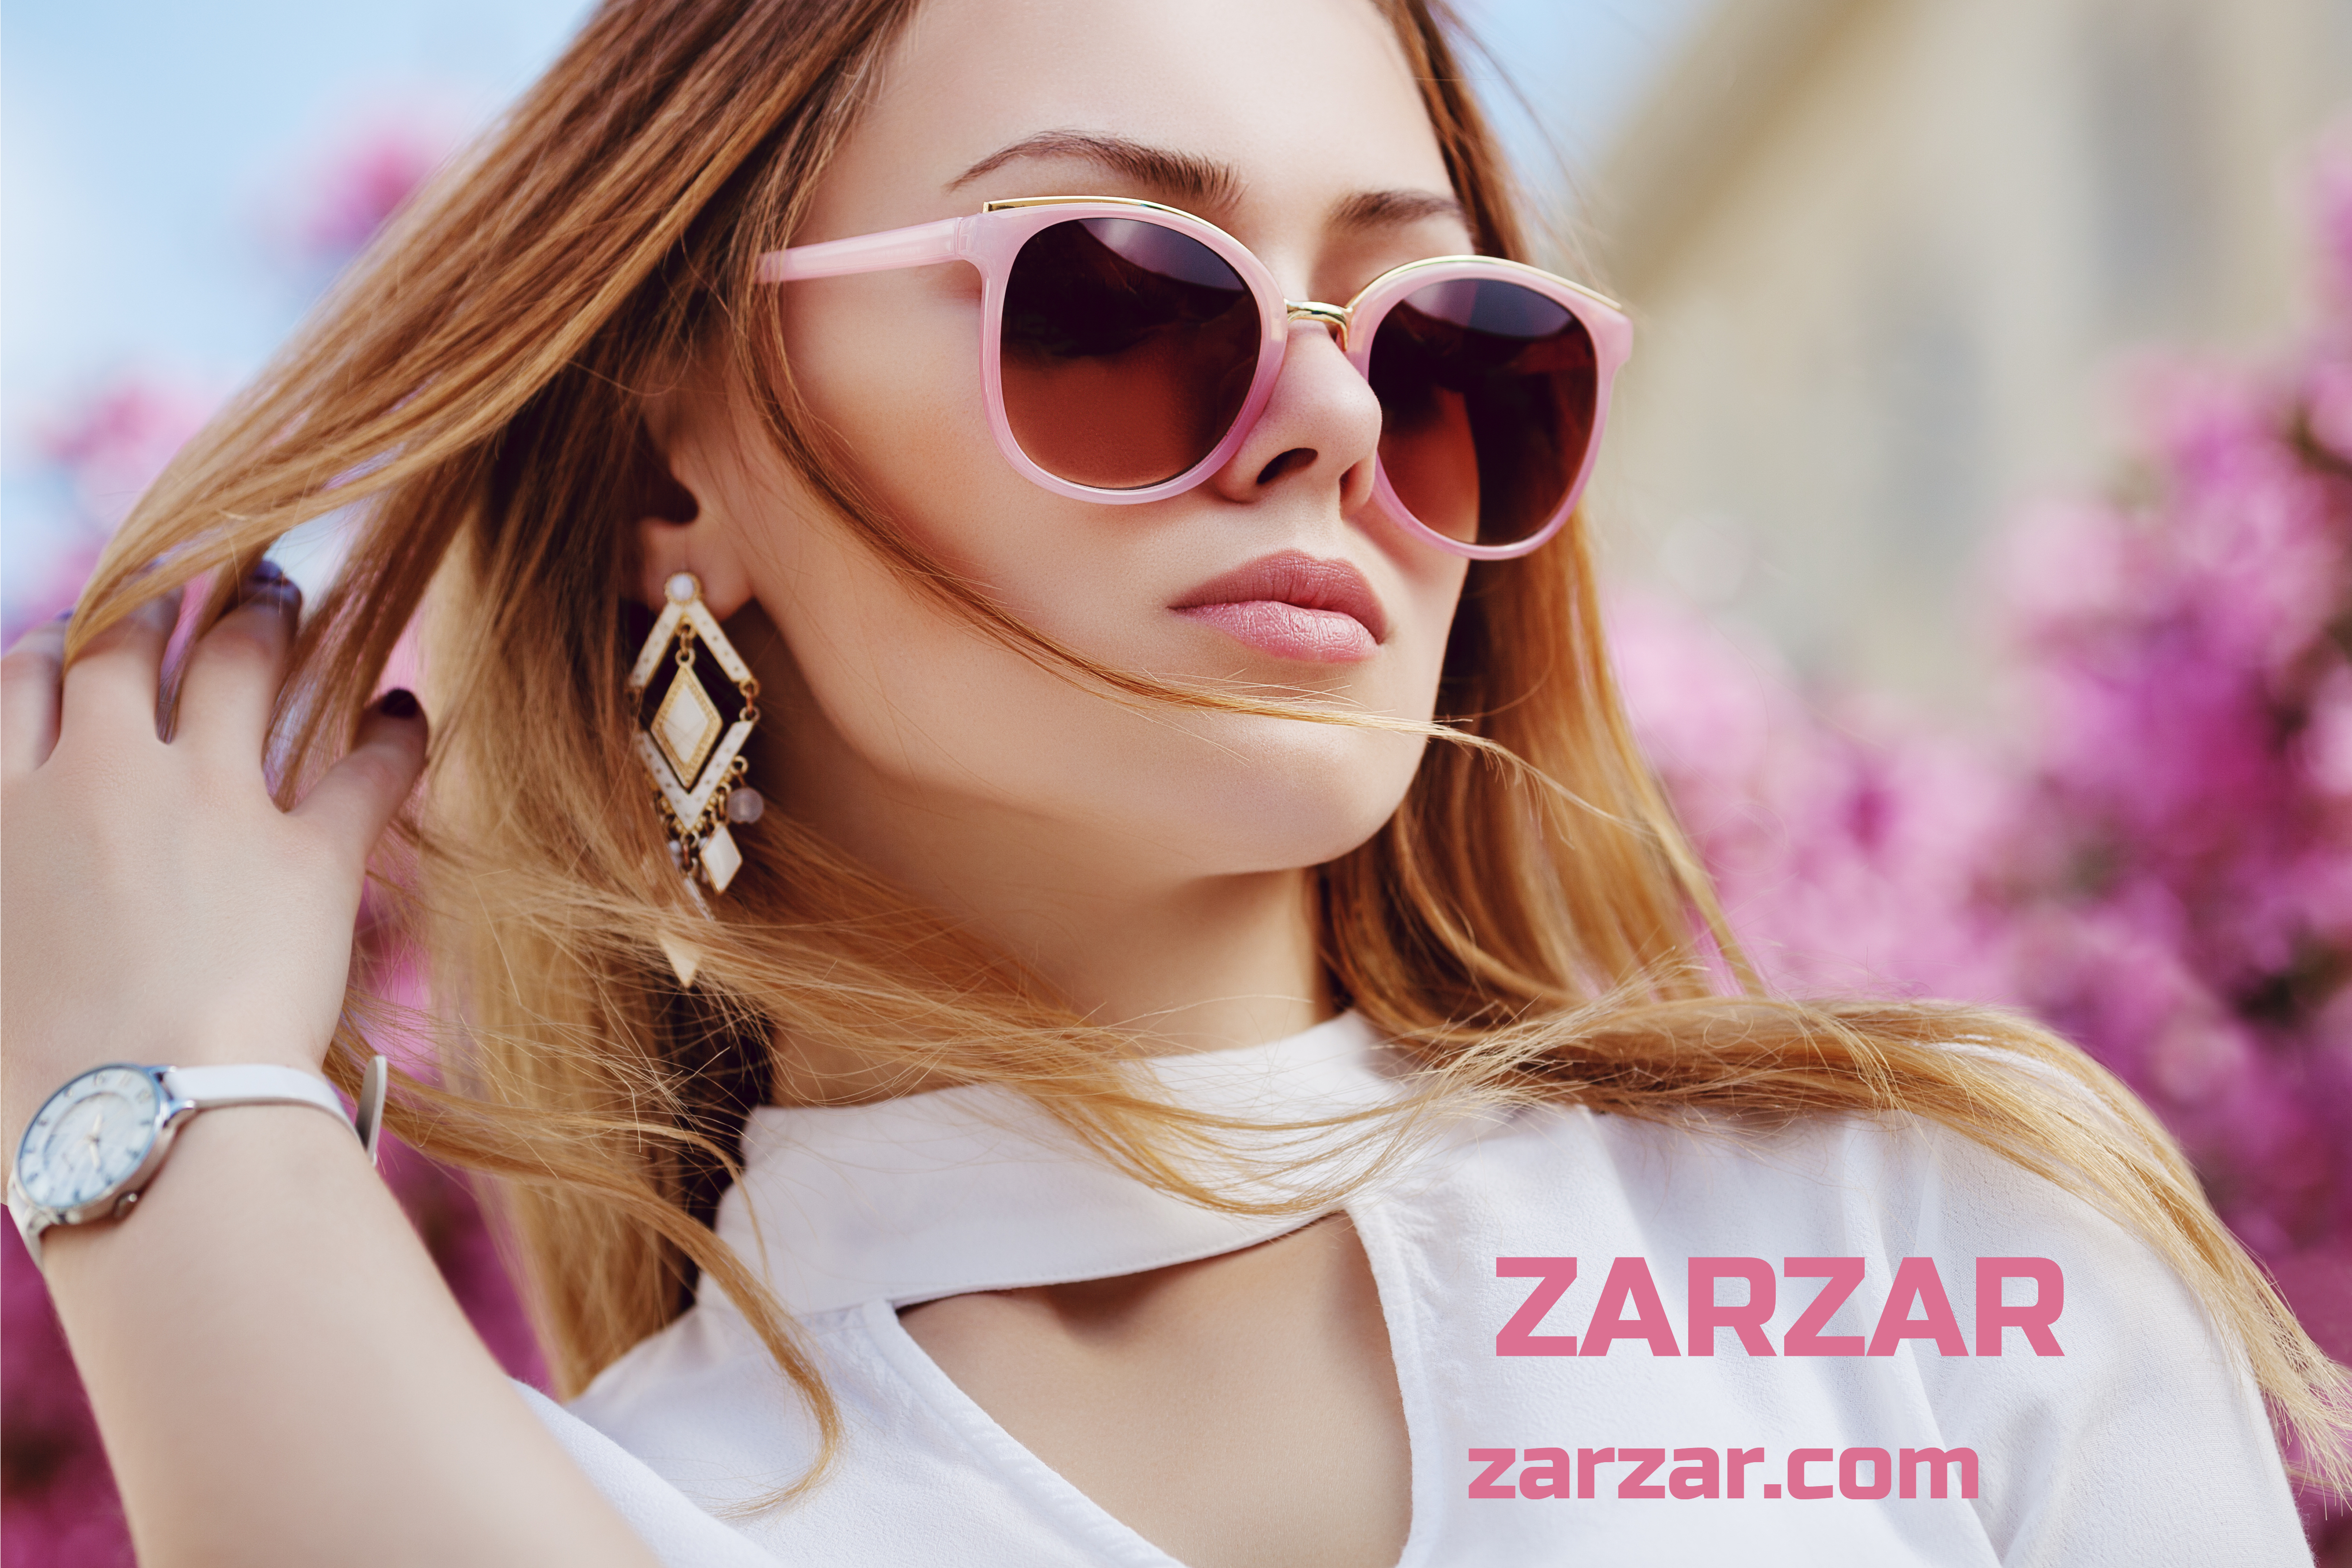 ZARZAR MODELS is one of the top modeling agencies for women in the United States representing top fashion models from around the world. ZARZAR MODELS is also the top modeling agency in San Diego and one of the top modeling agencies in Los Angeles, Las Vegas, Miami, and New York for women, teenagers, and teens (teenage girls).